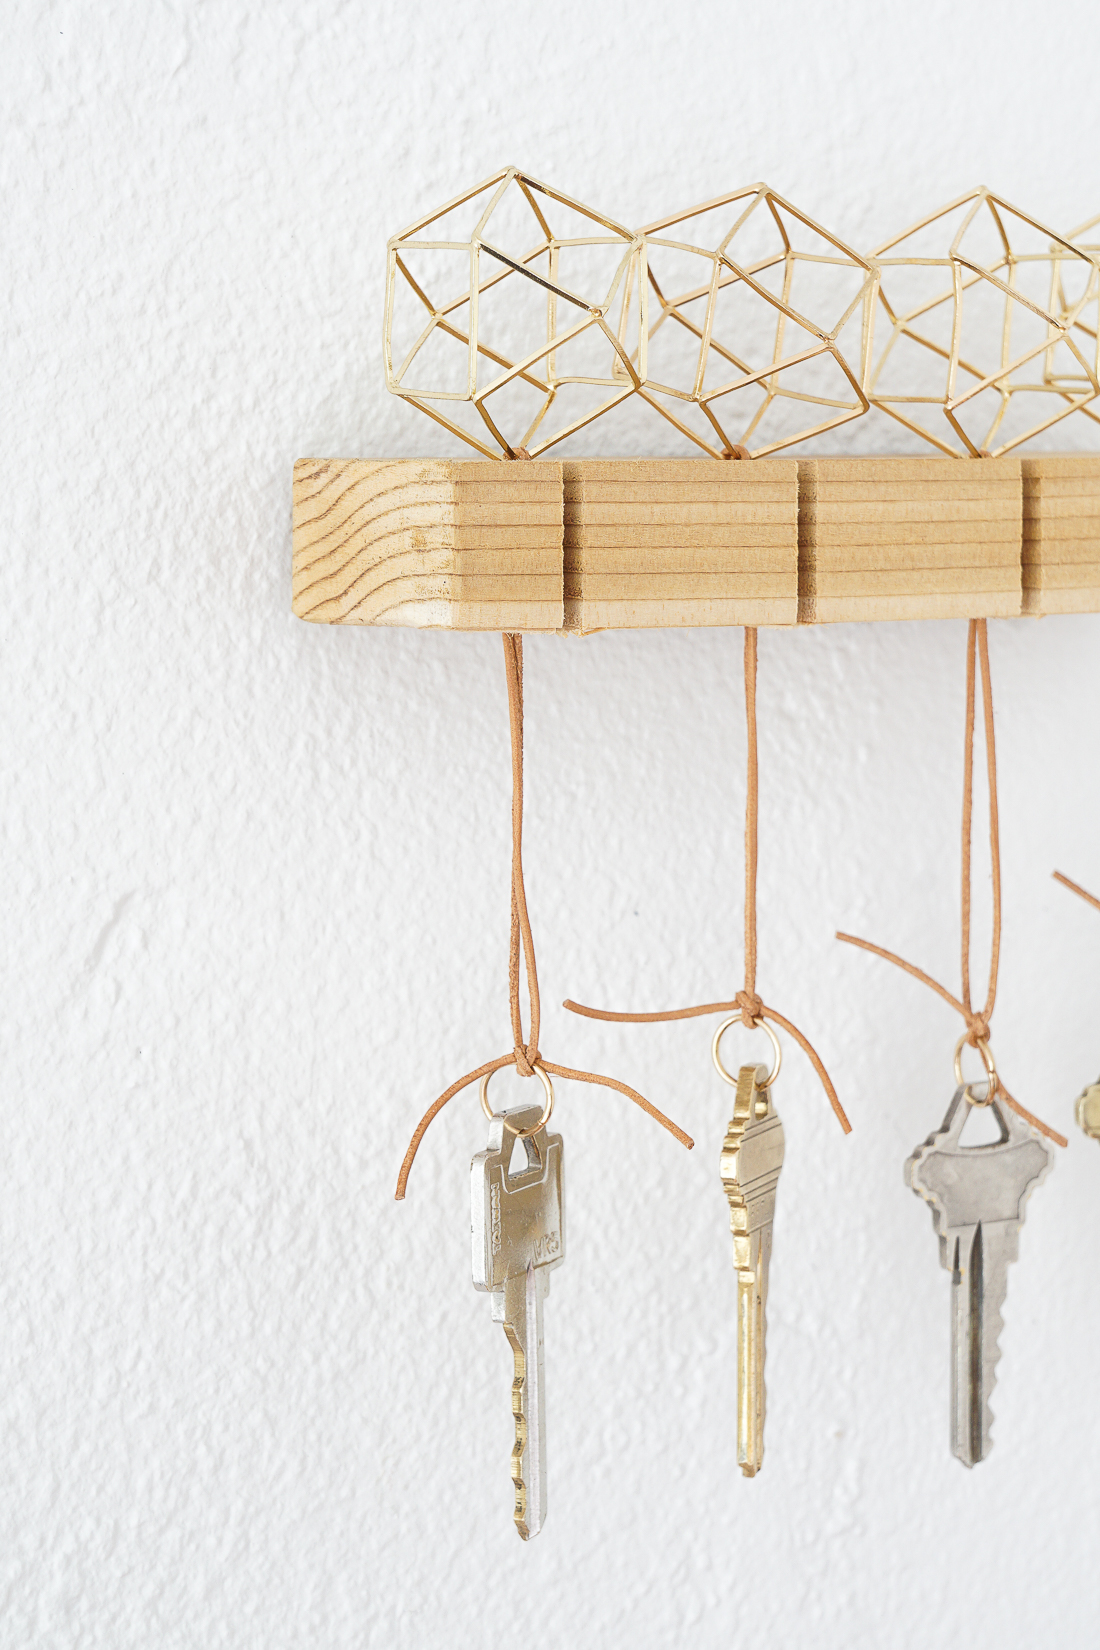 diy modern key holder francois et moi